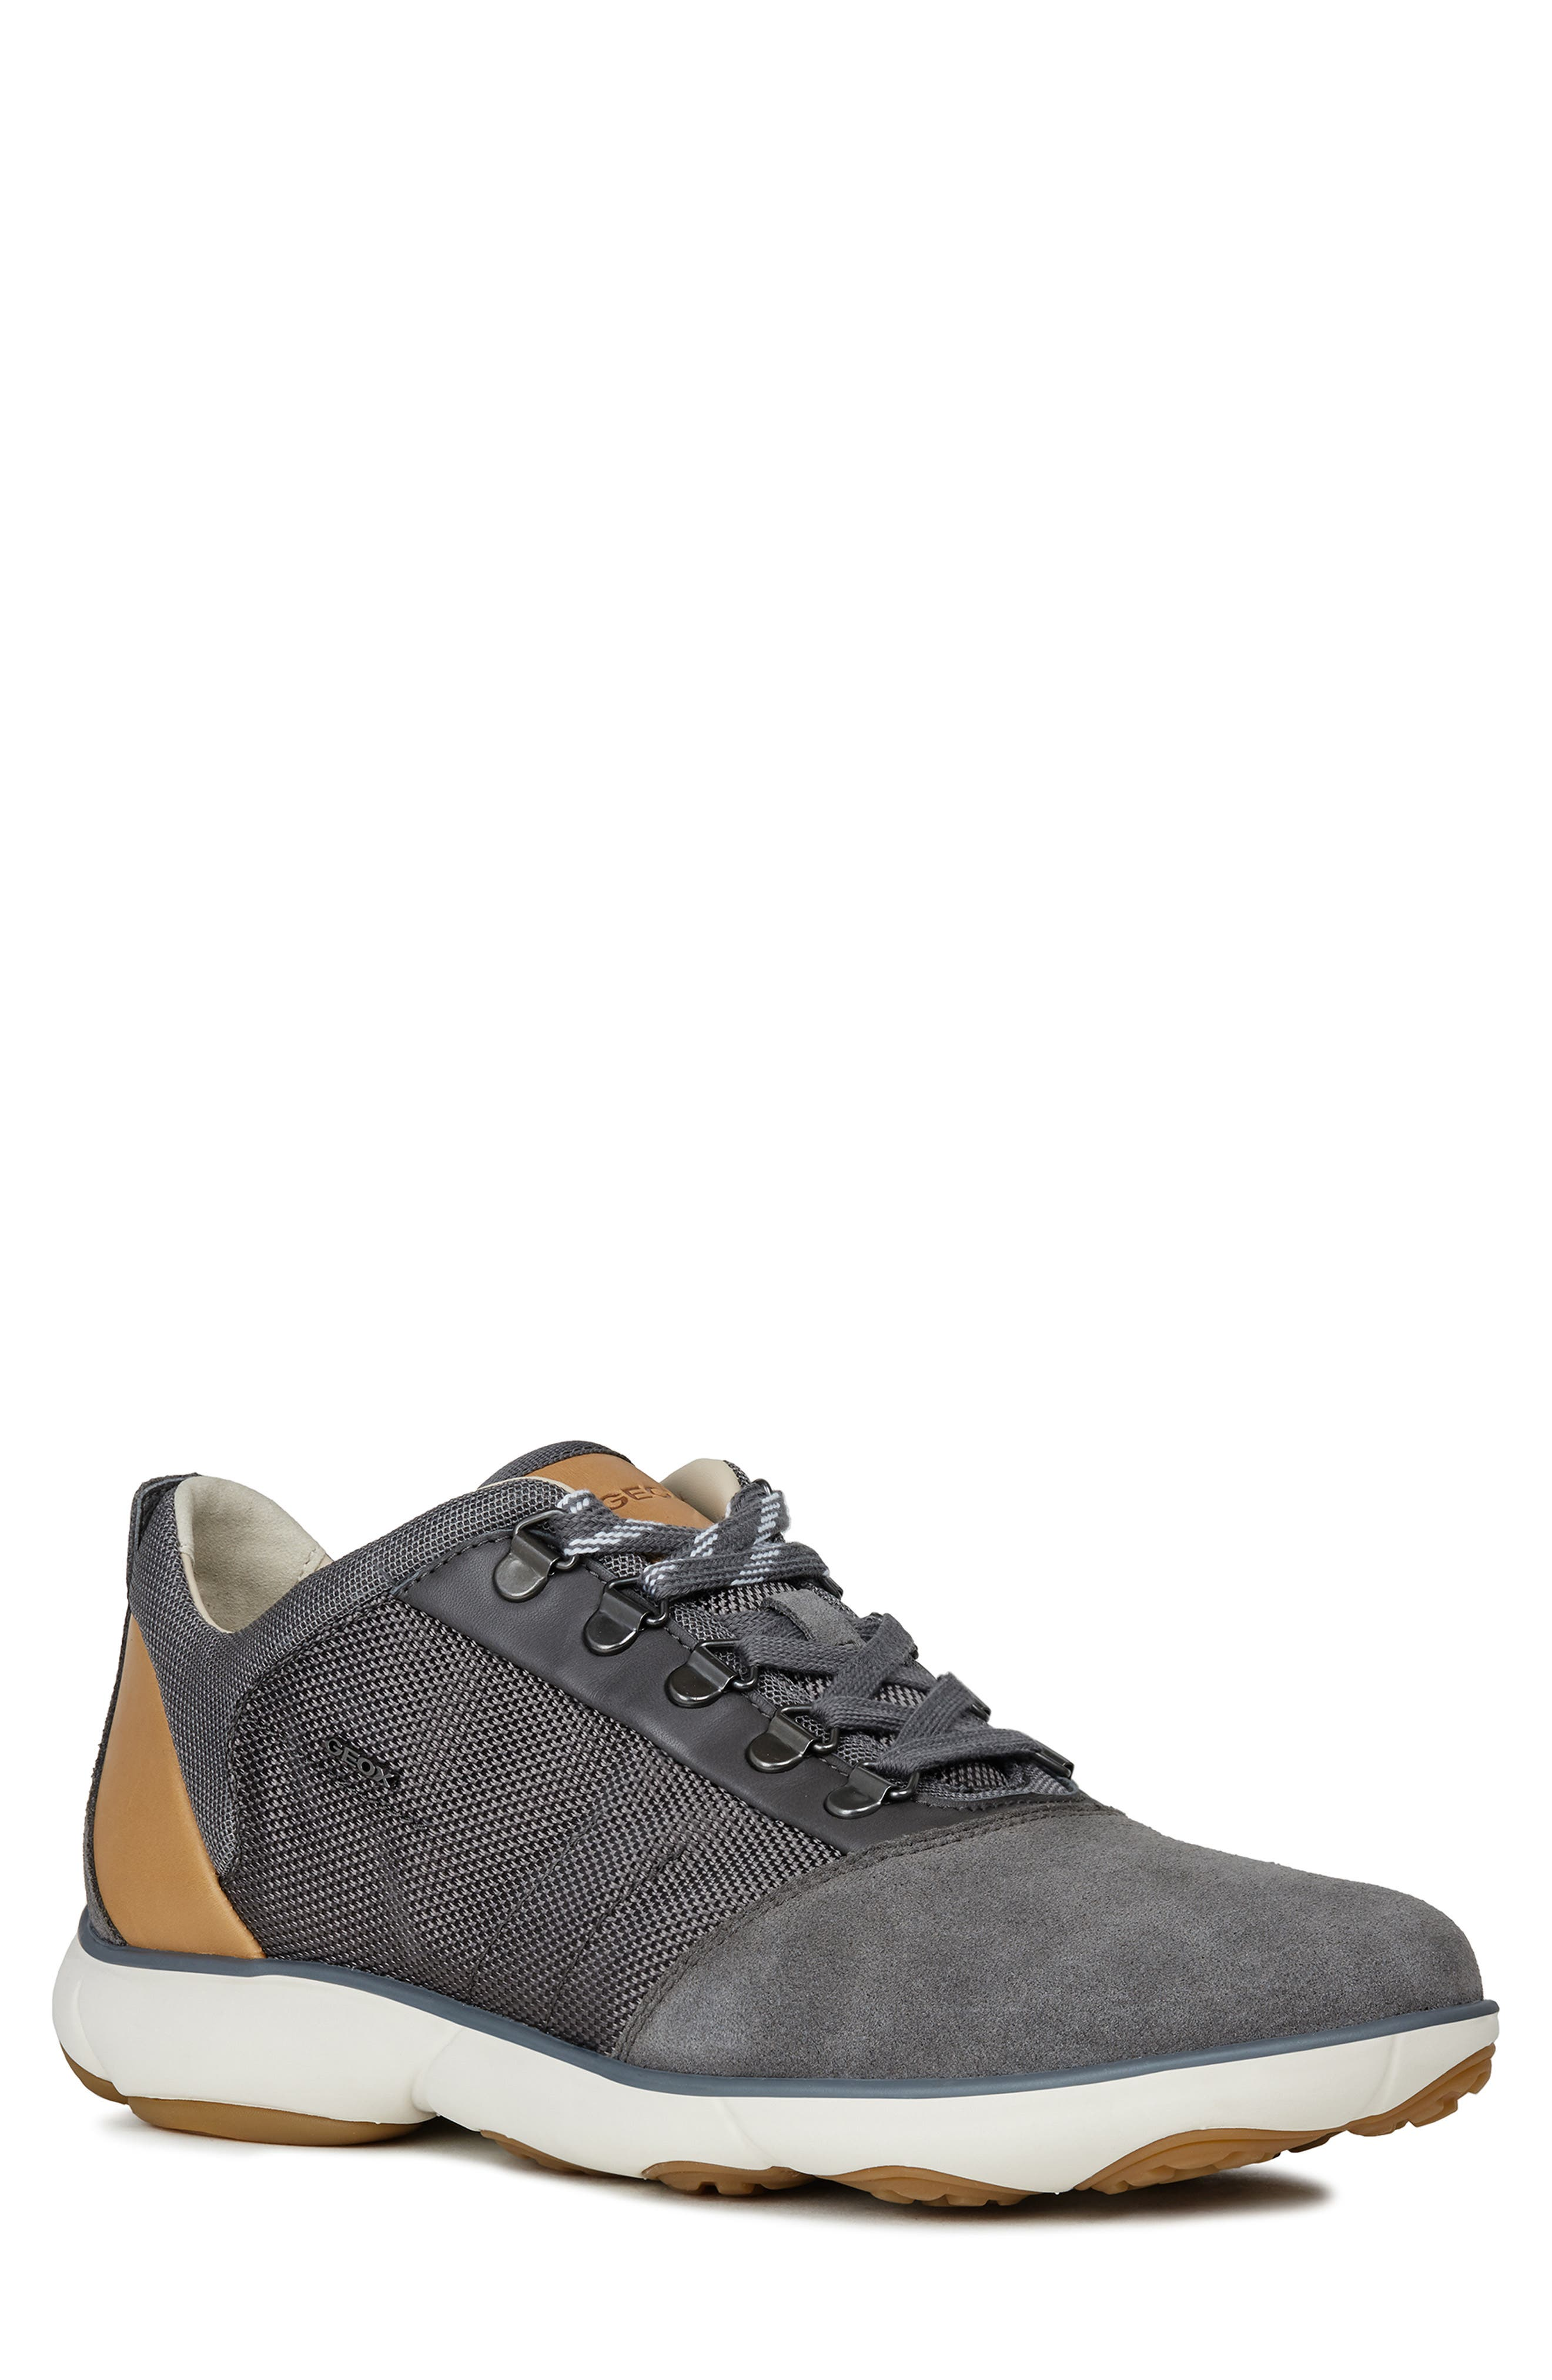 9e9a8bd5eb9 Geox - Men's Casual Fashion Shoes and Sneakers